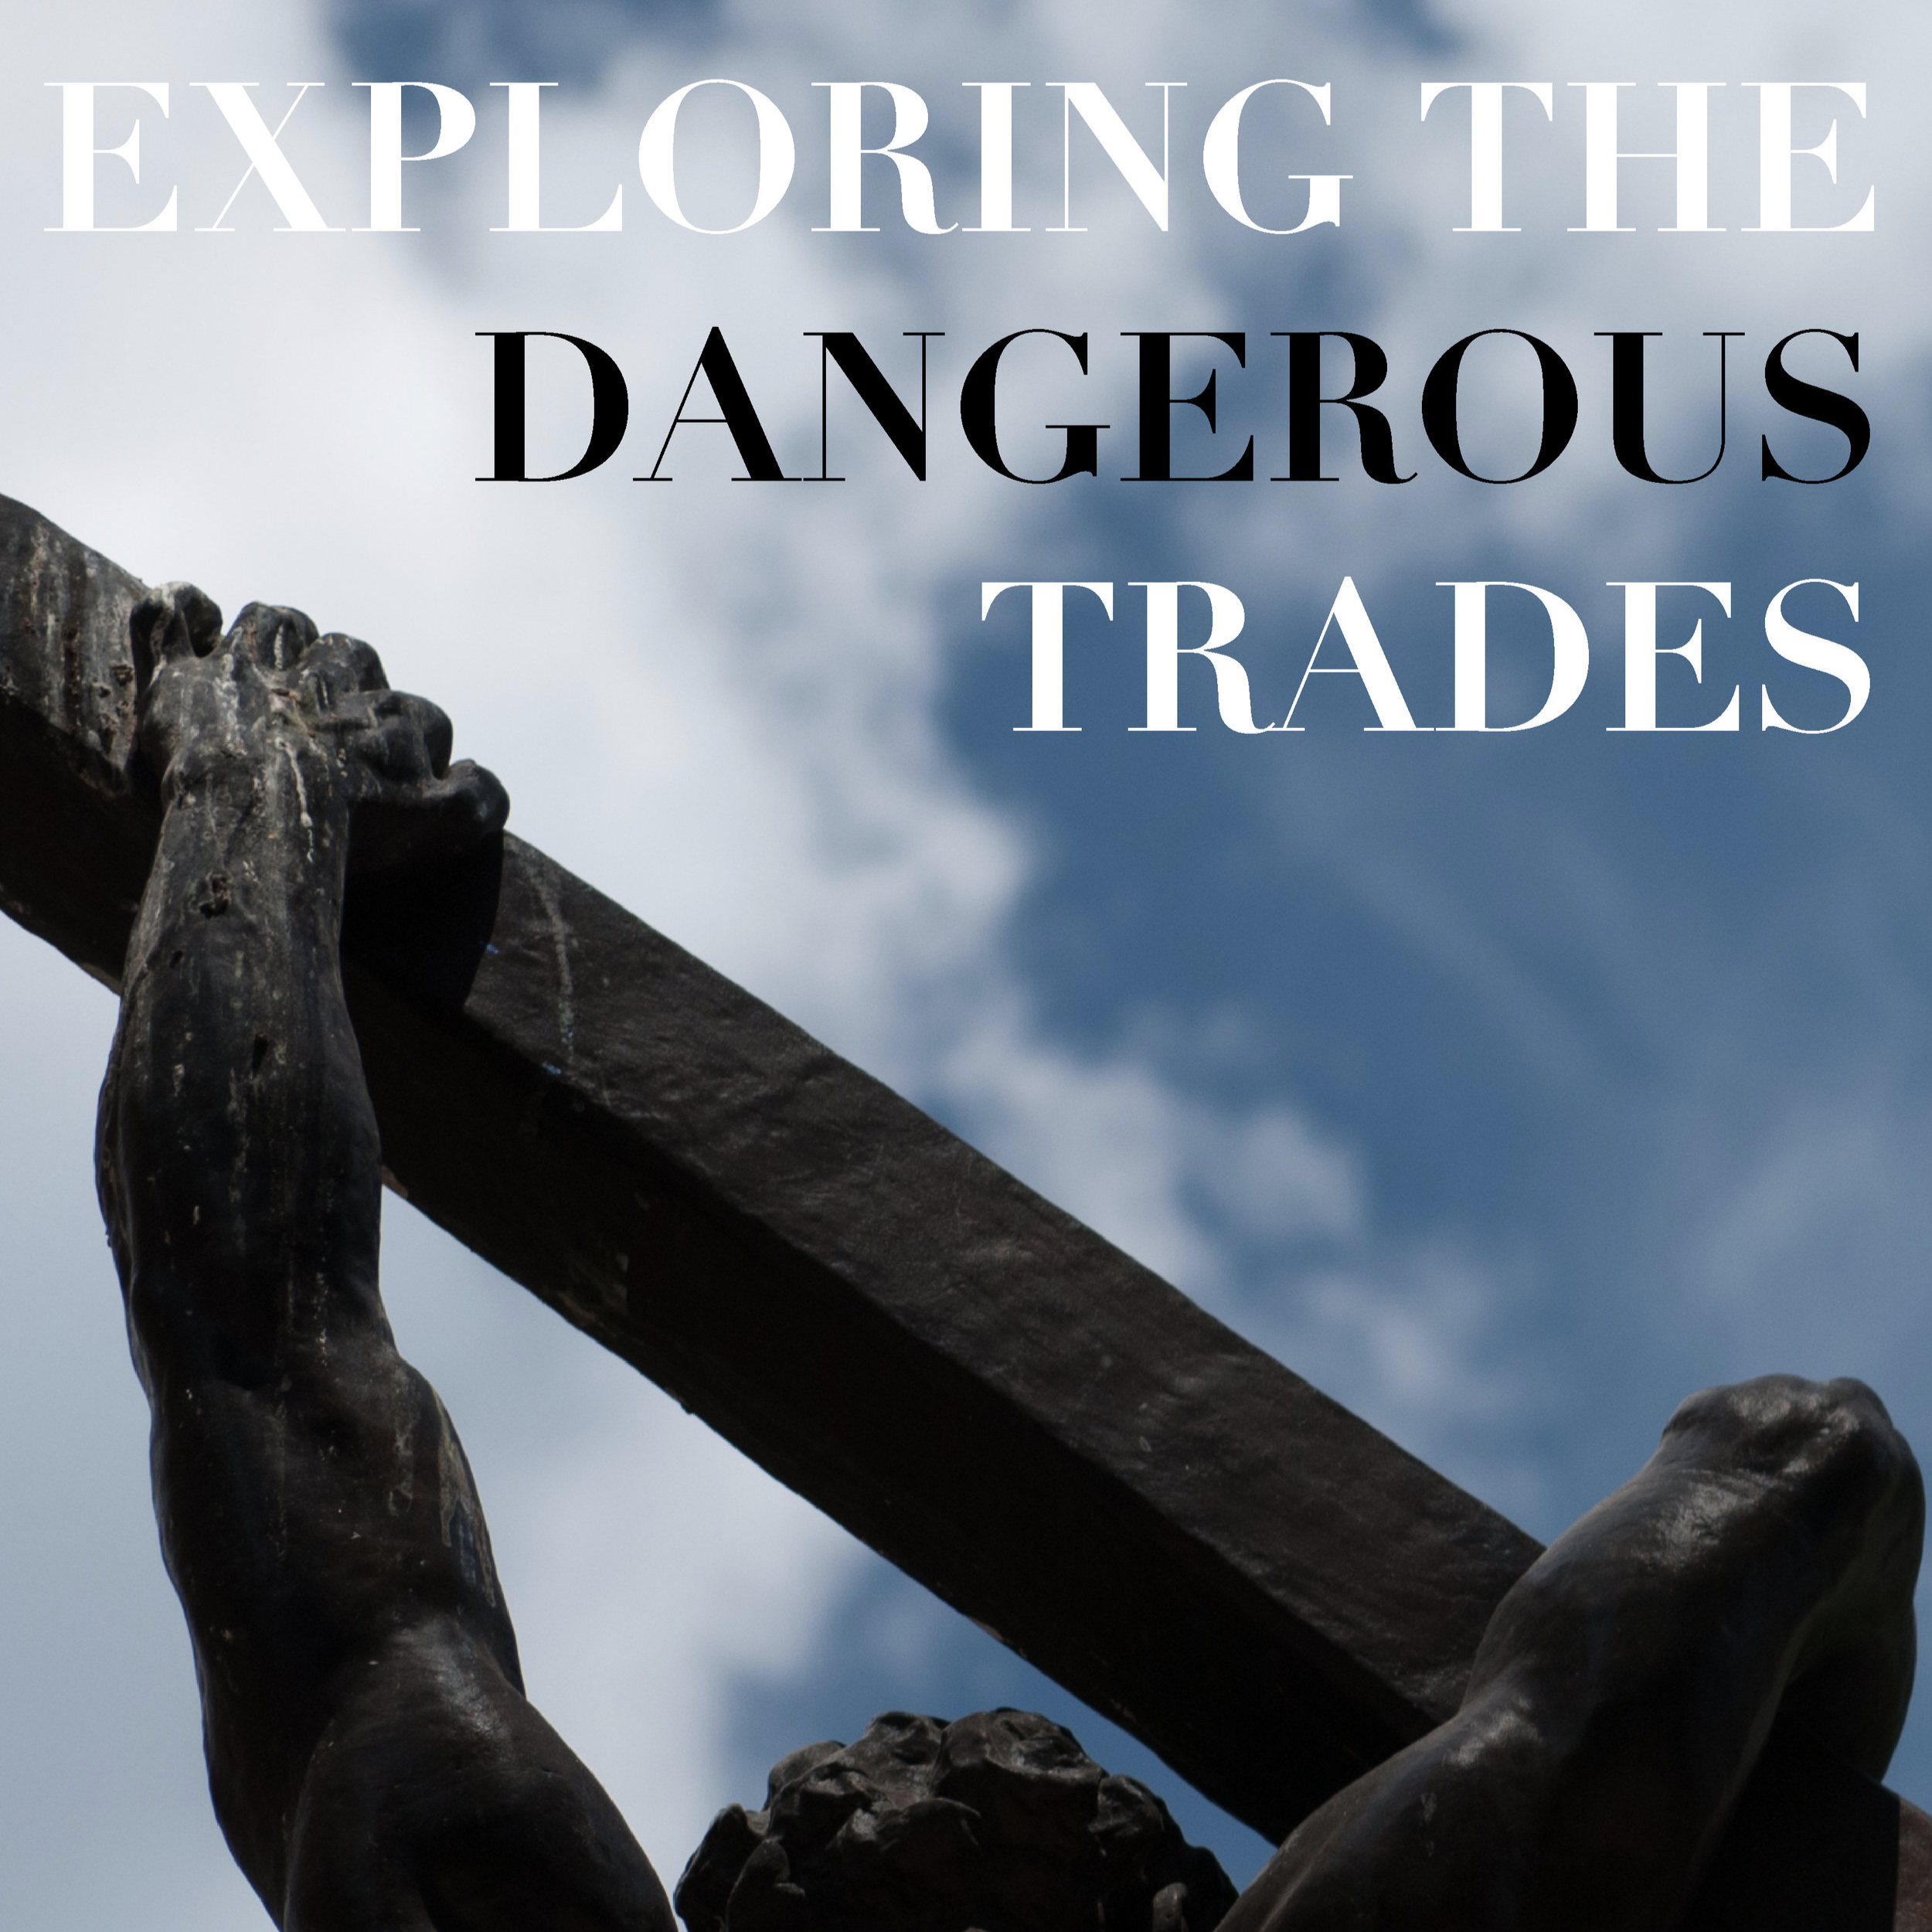 exploring+the+dangerous+trades_cover-01.jpg